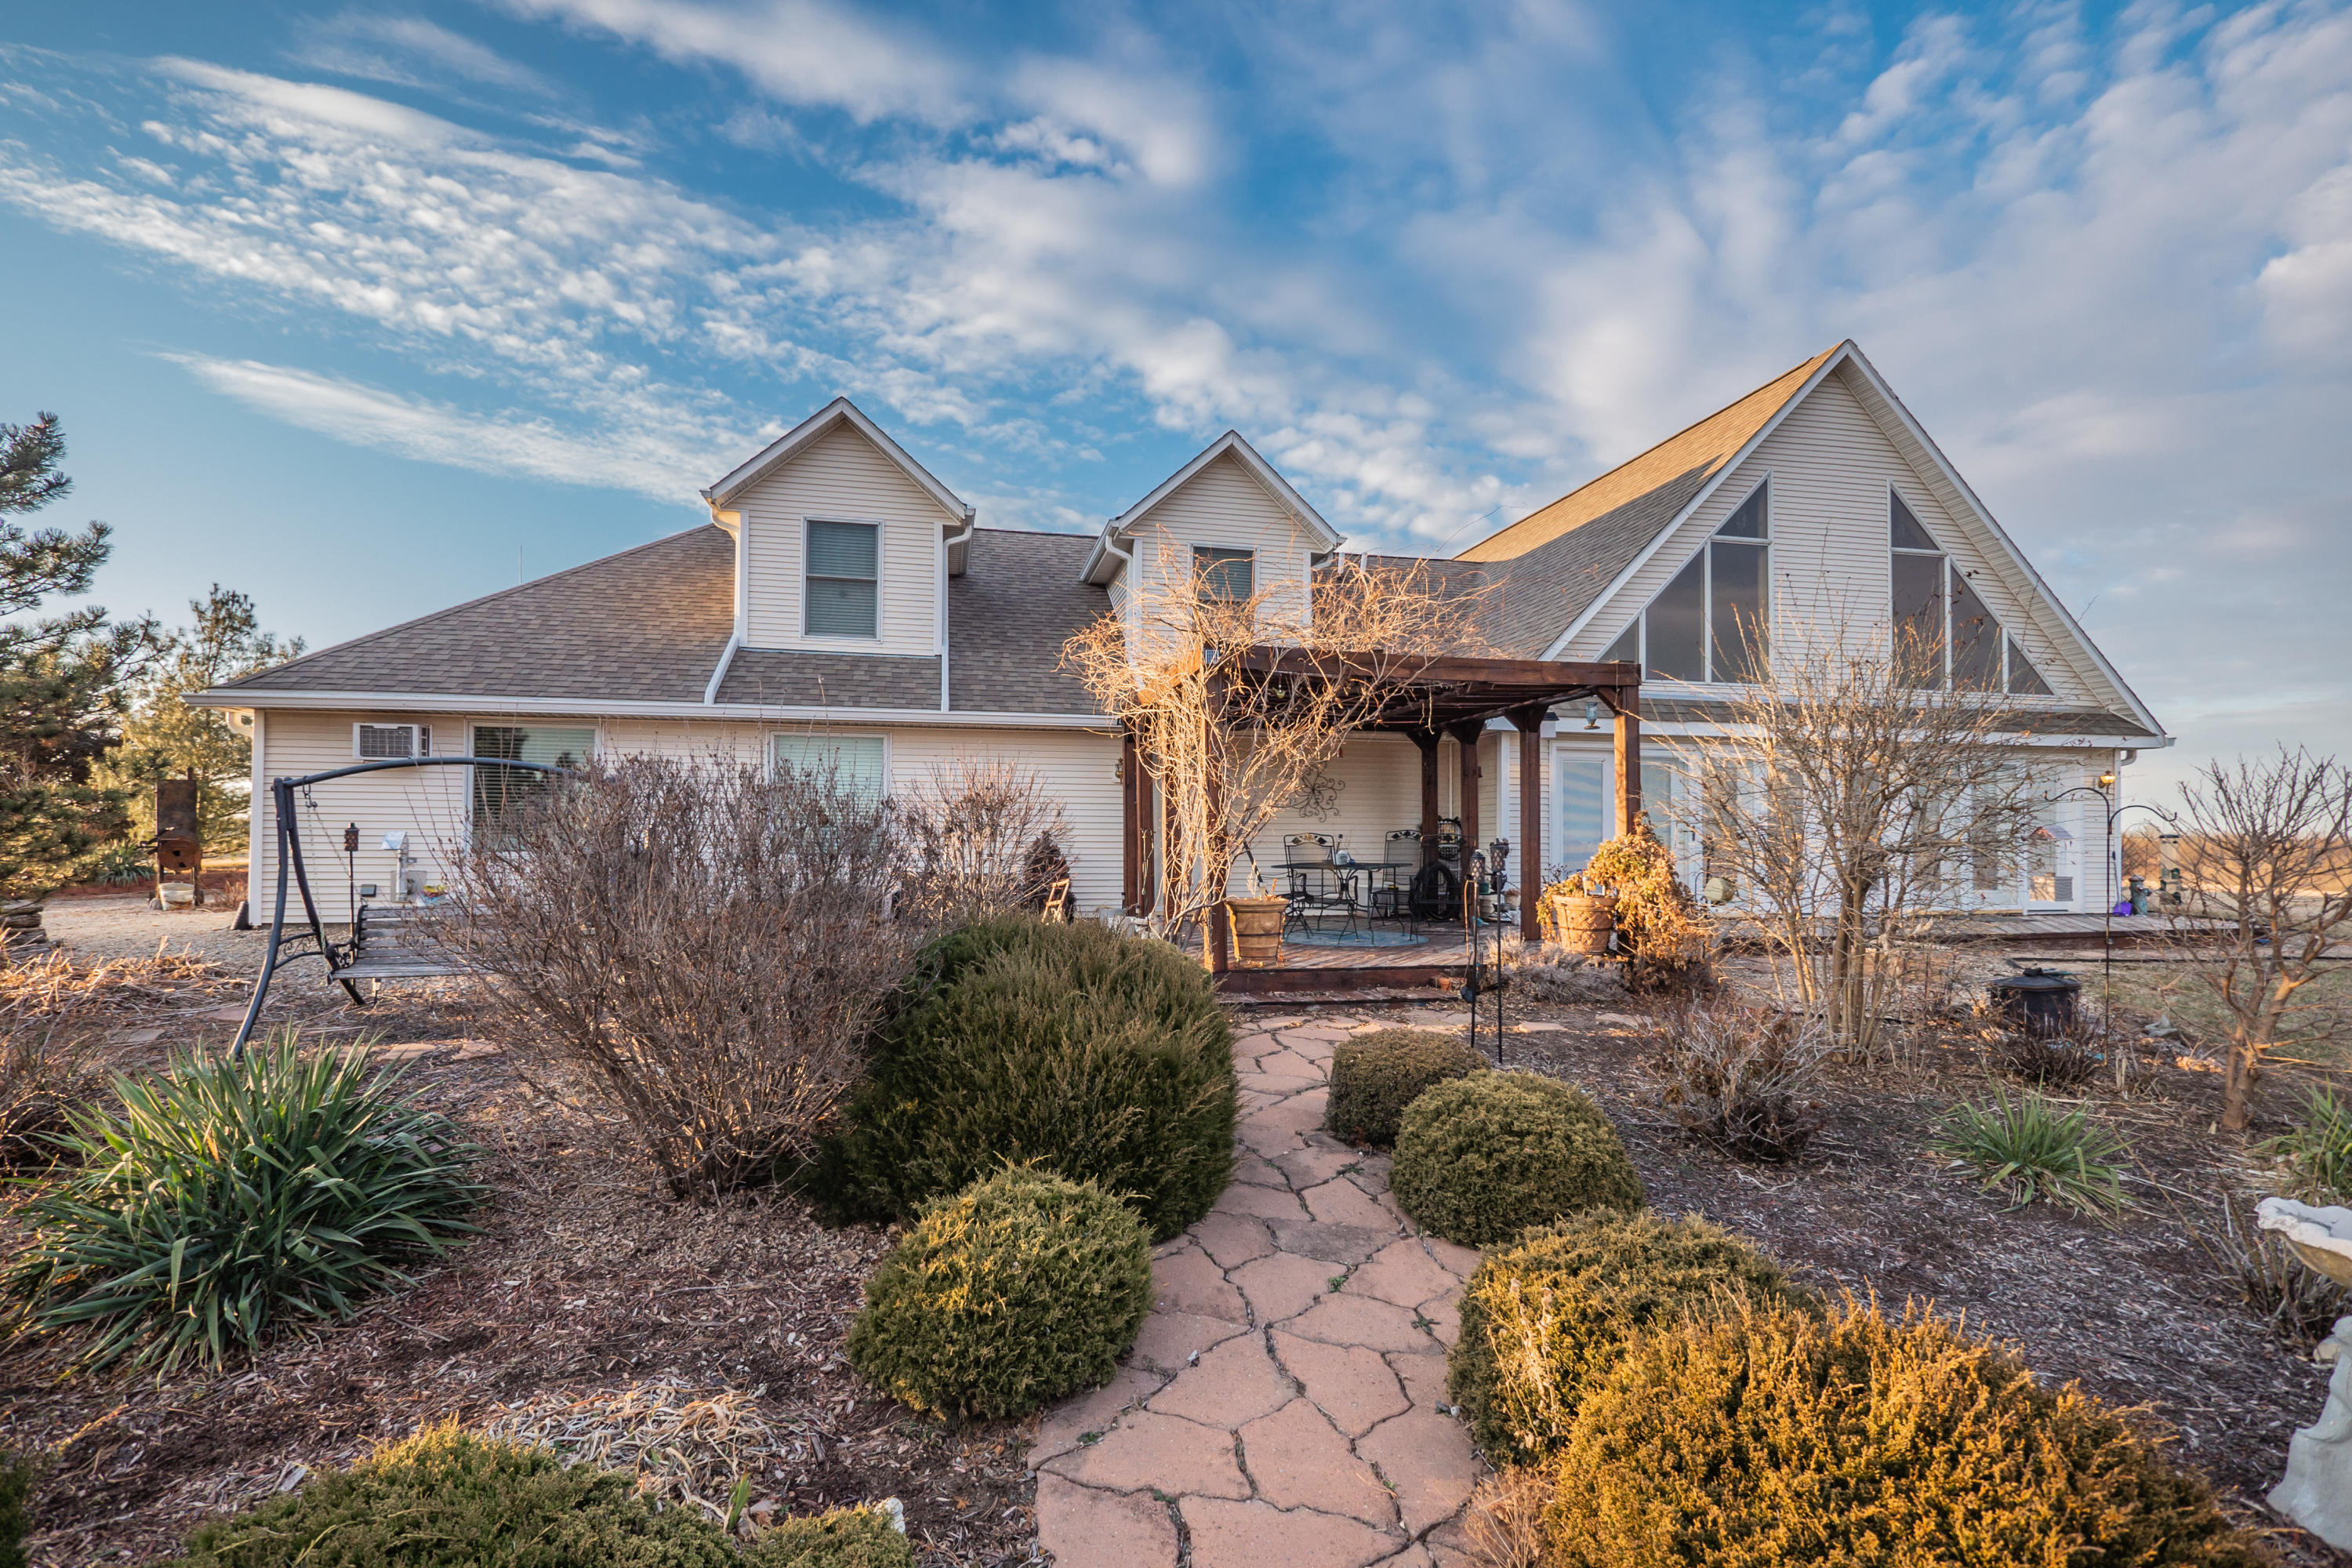 23540 LAKEVIEW RD, Maryville, Missouri 64468, 4 Bedrooms Bedrooms, ,3 BathroomsBathrooms,Residential,LAKEVIEW,4630